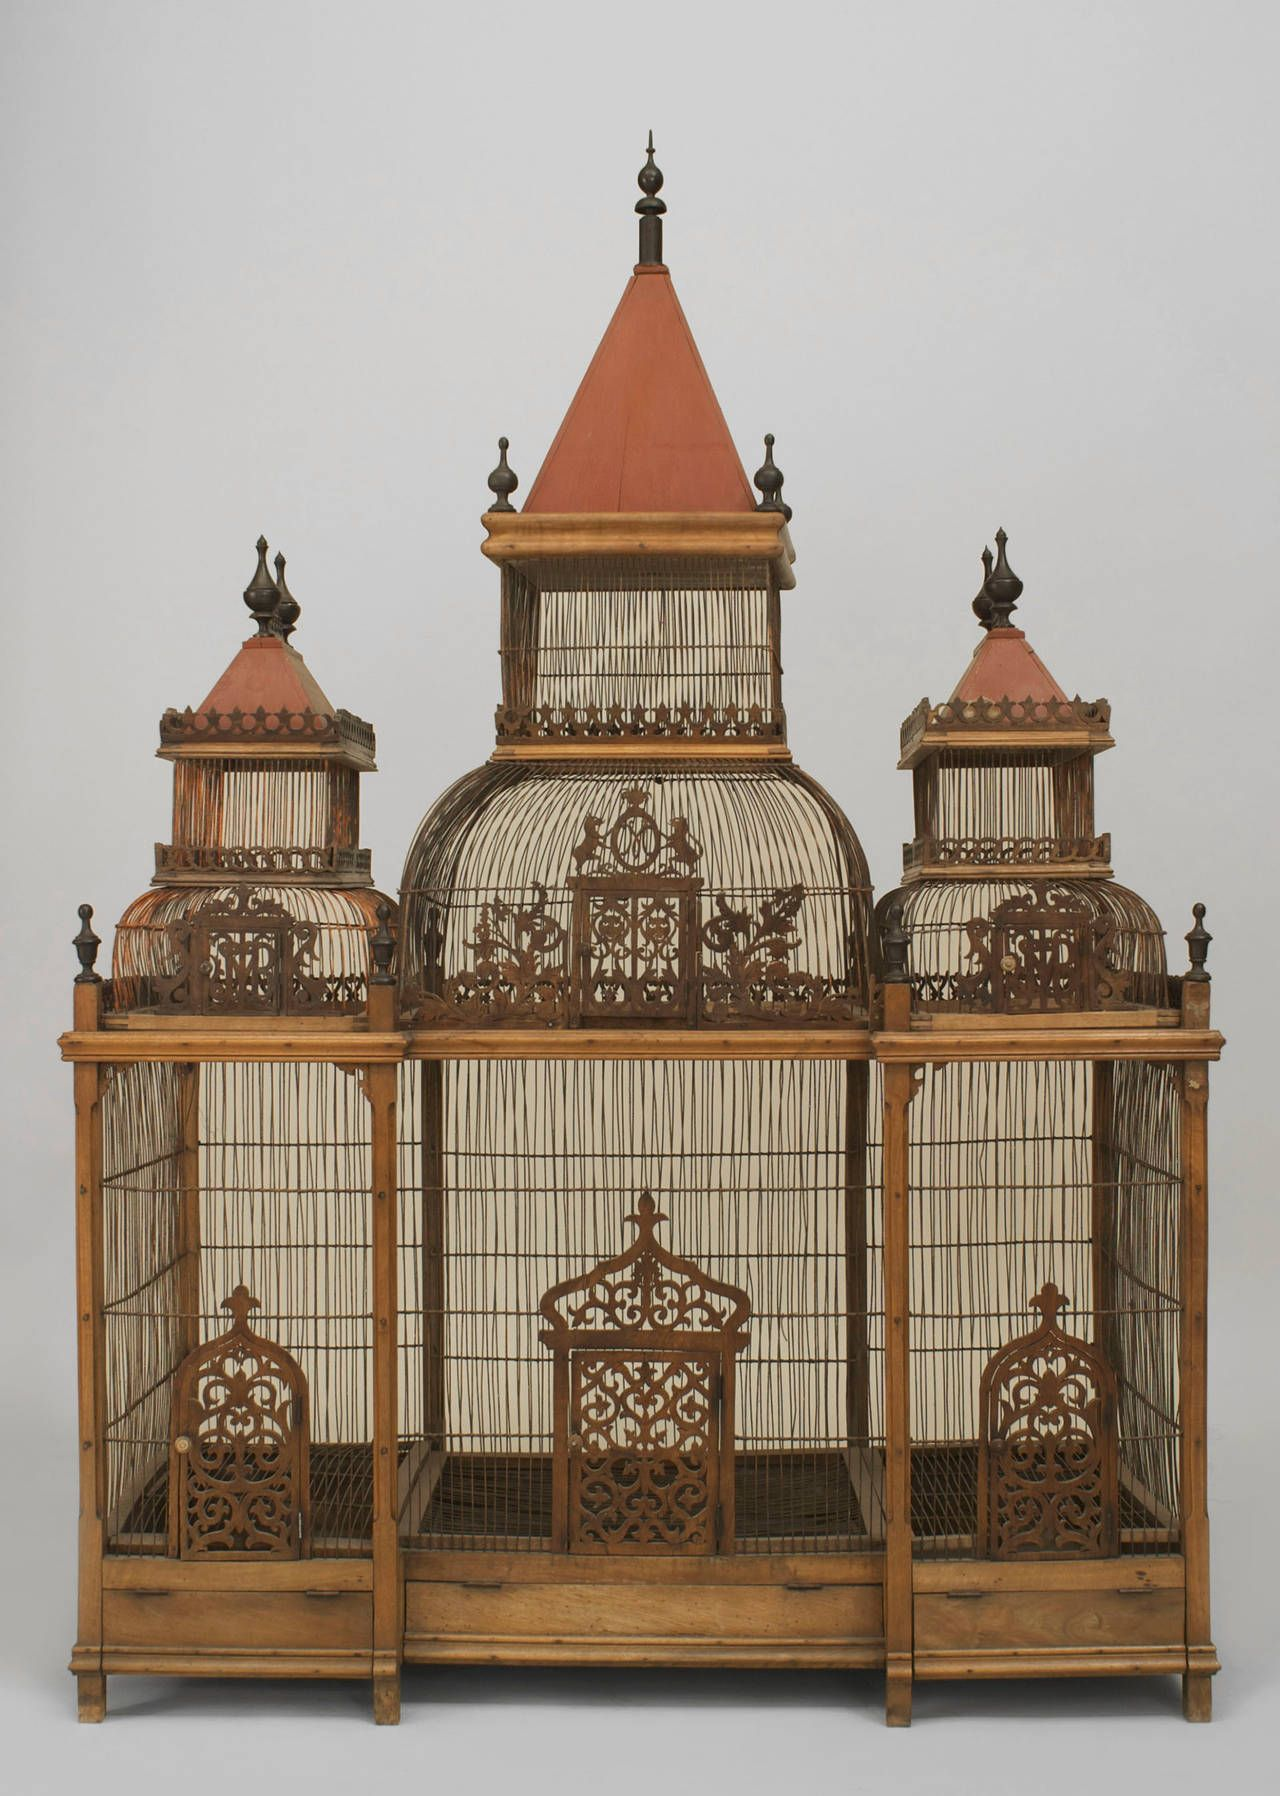 Collections Corner Birdcages, Birdcages And More Birdcages - Birds And